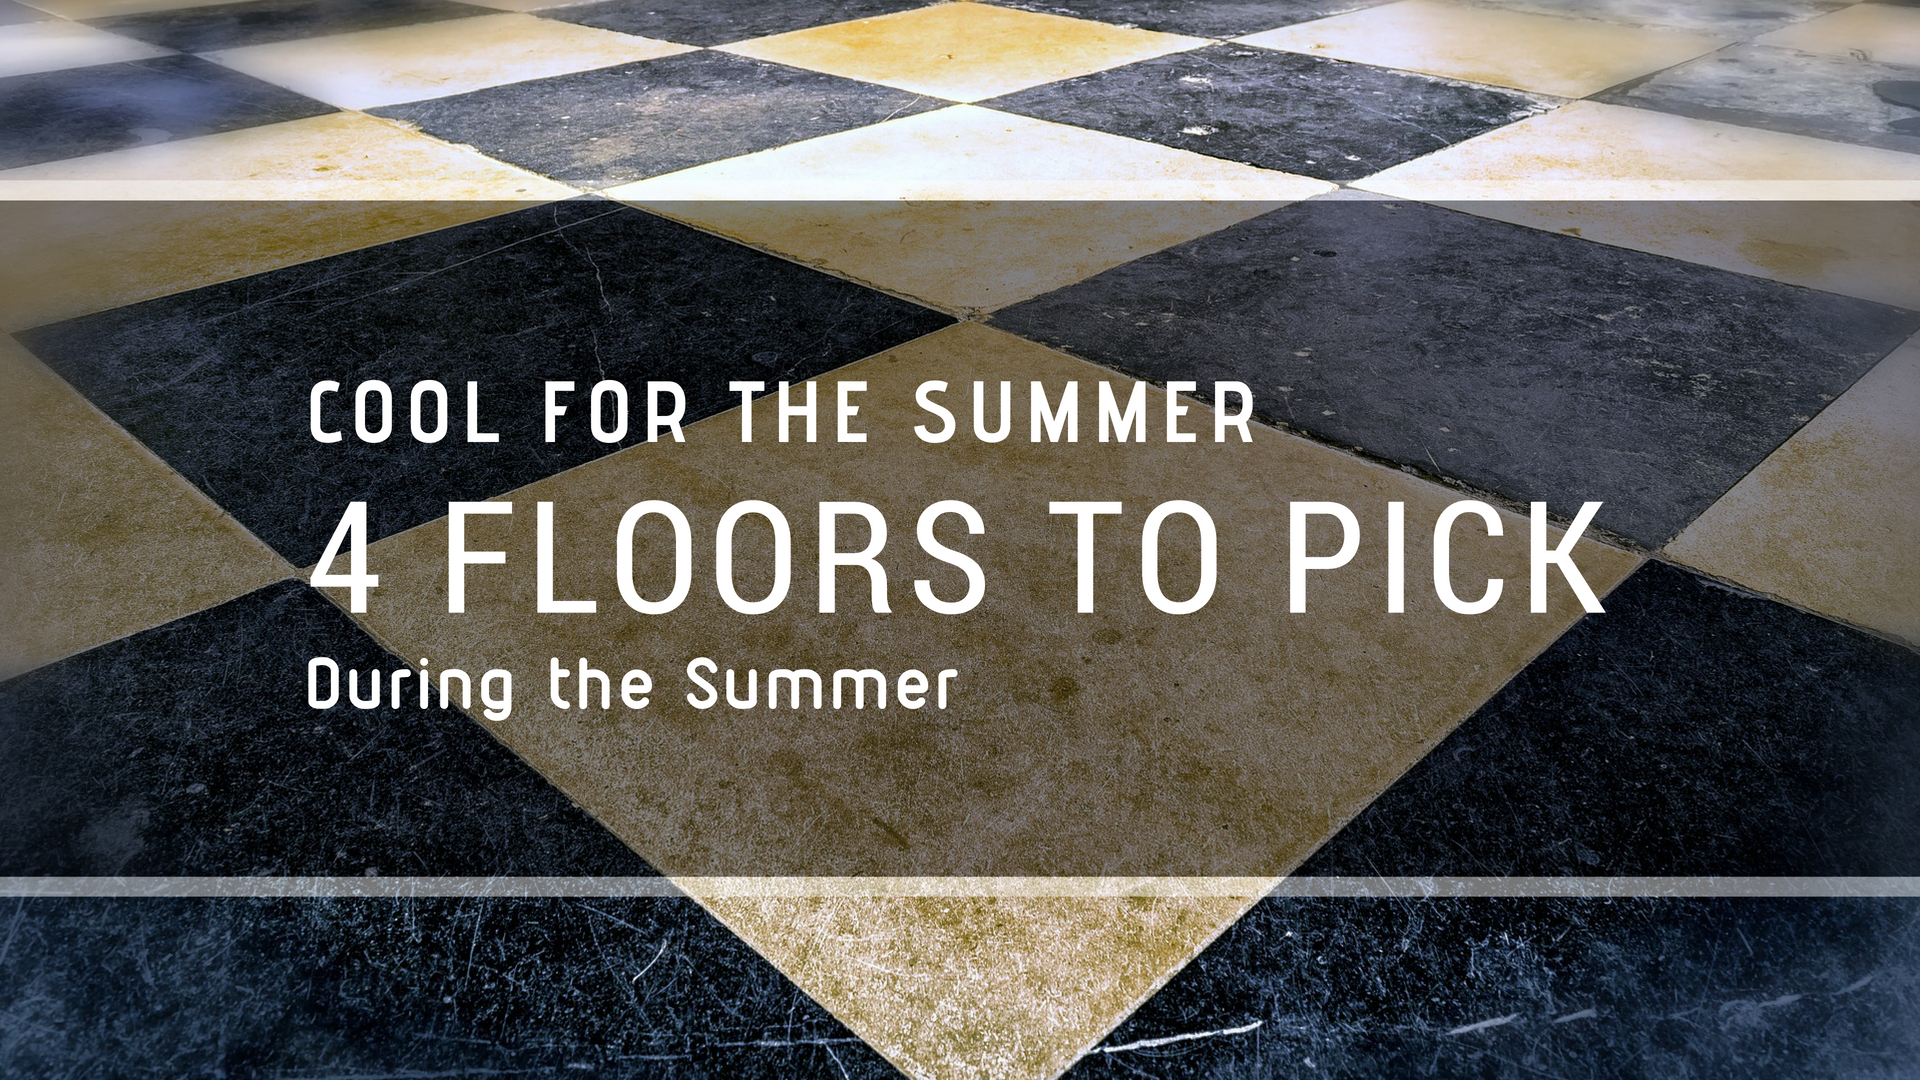 Cool for the Summer: 4 Floors to Pick During the Summer